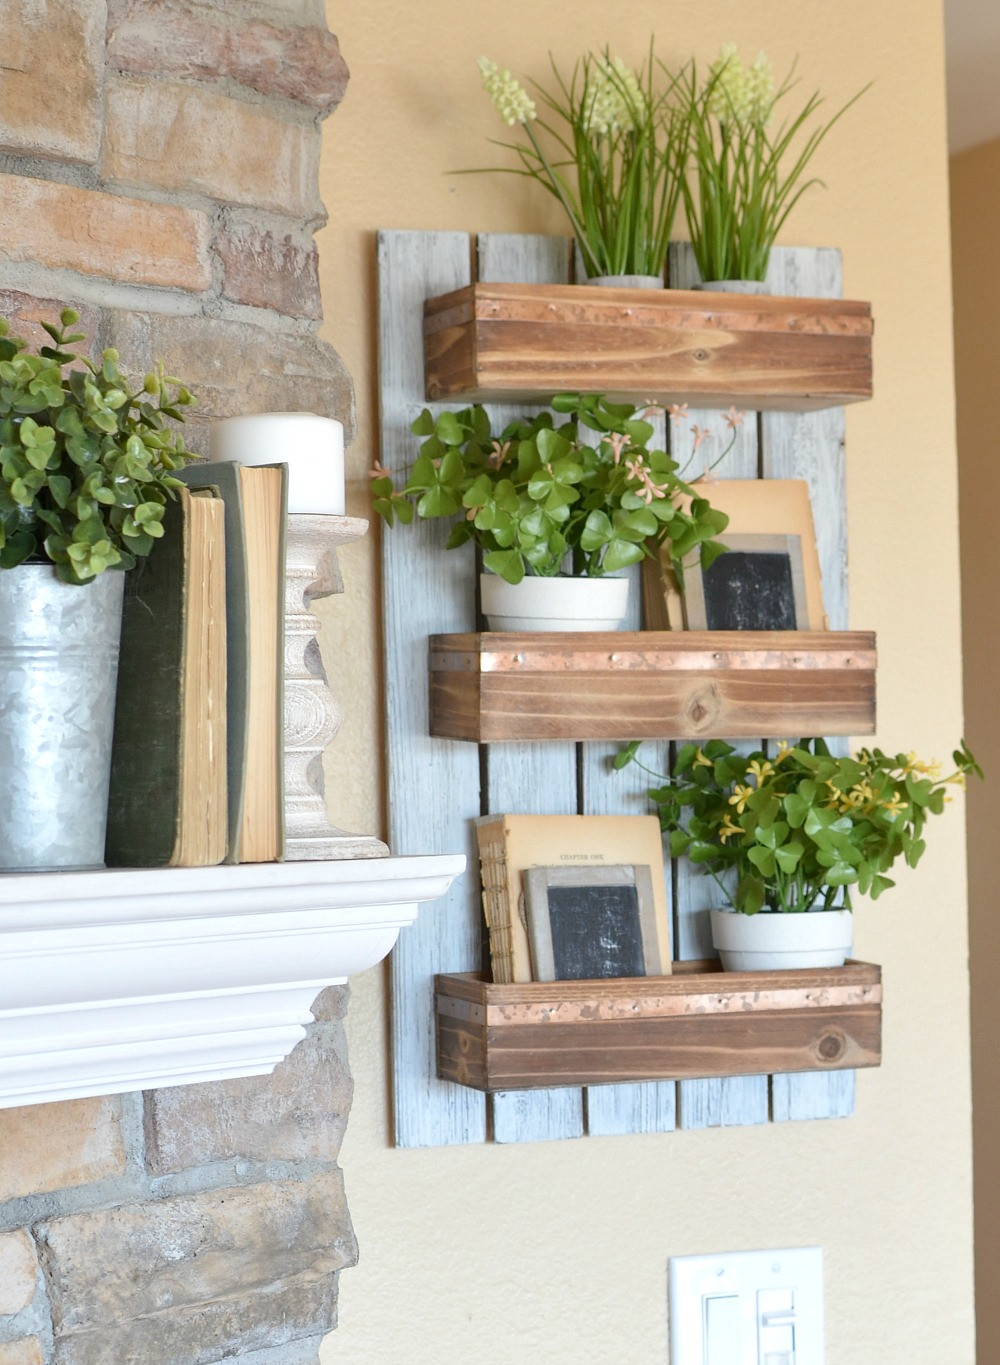 Best ideas about DIY Wall Planter . Save or Pin DIY Wooden Wall Planter Little Vintage Nest Now.